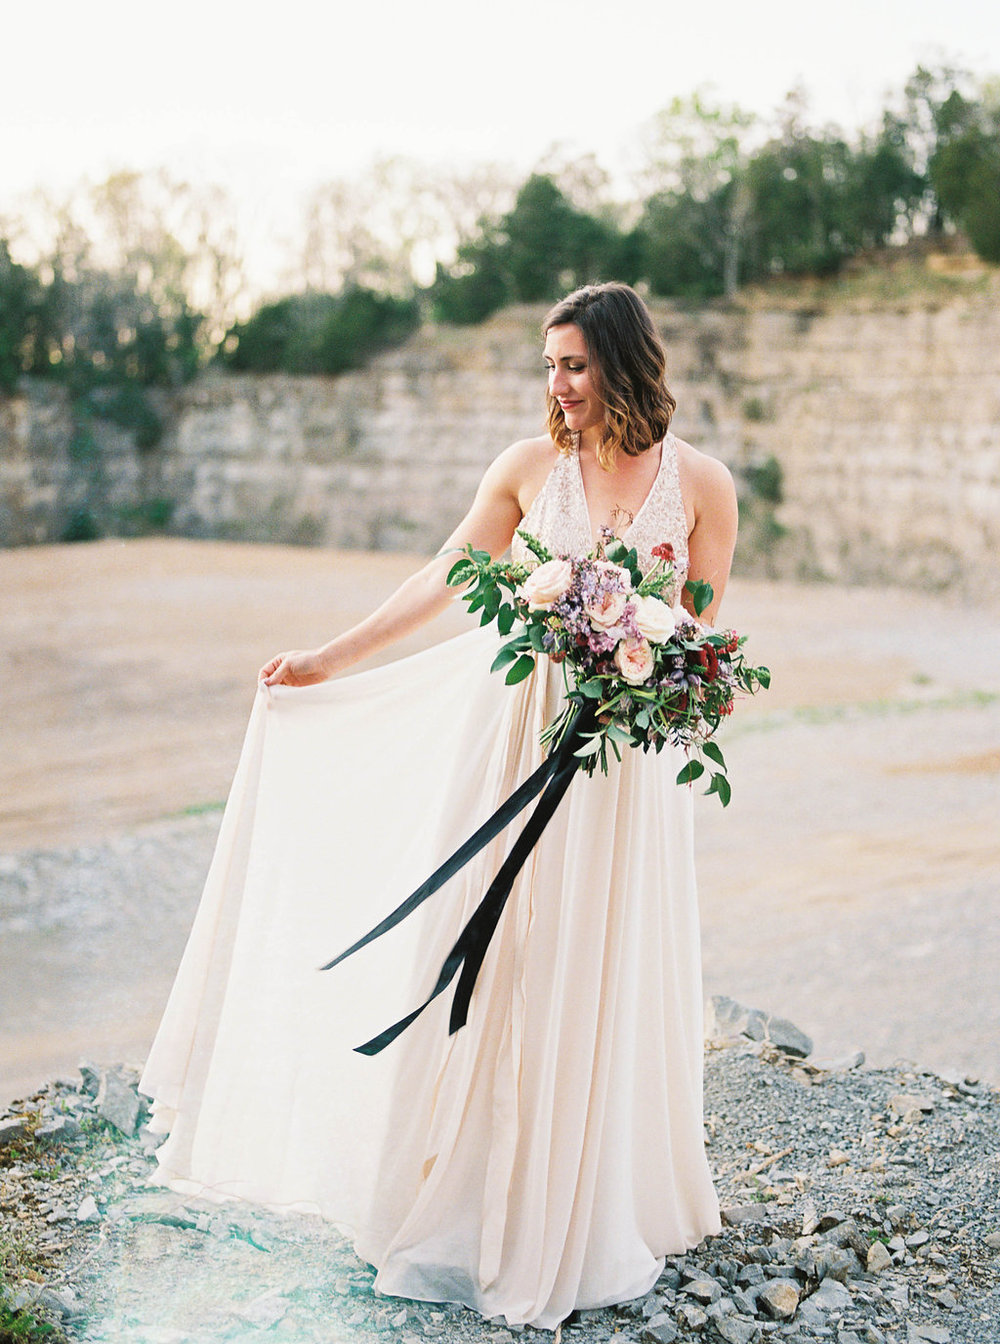 Rock Quarry bridal portraits in Nashville